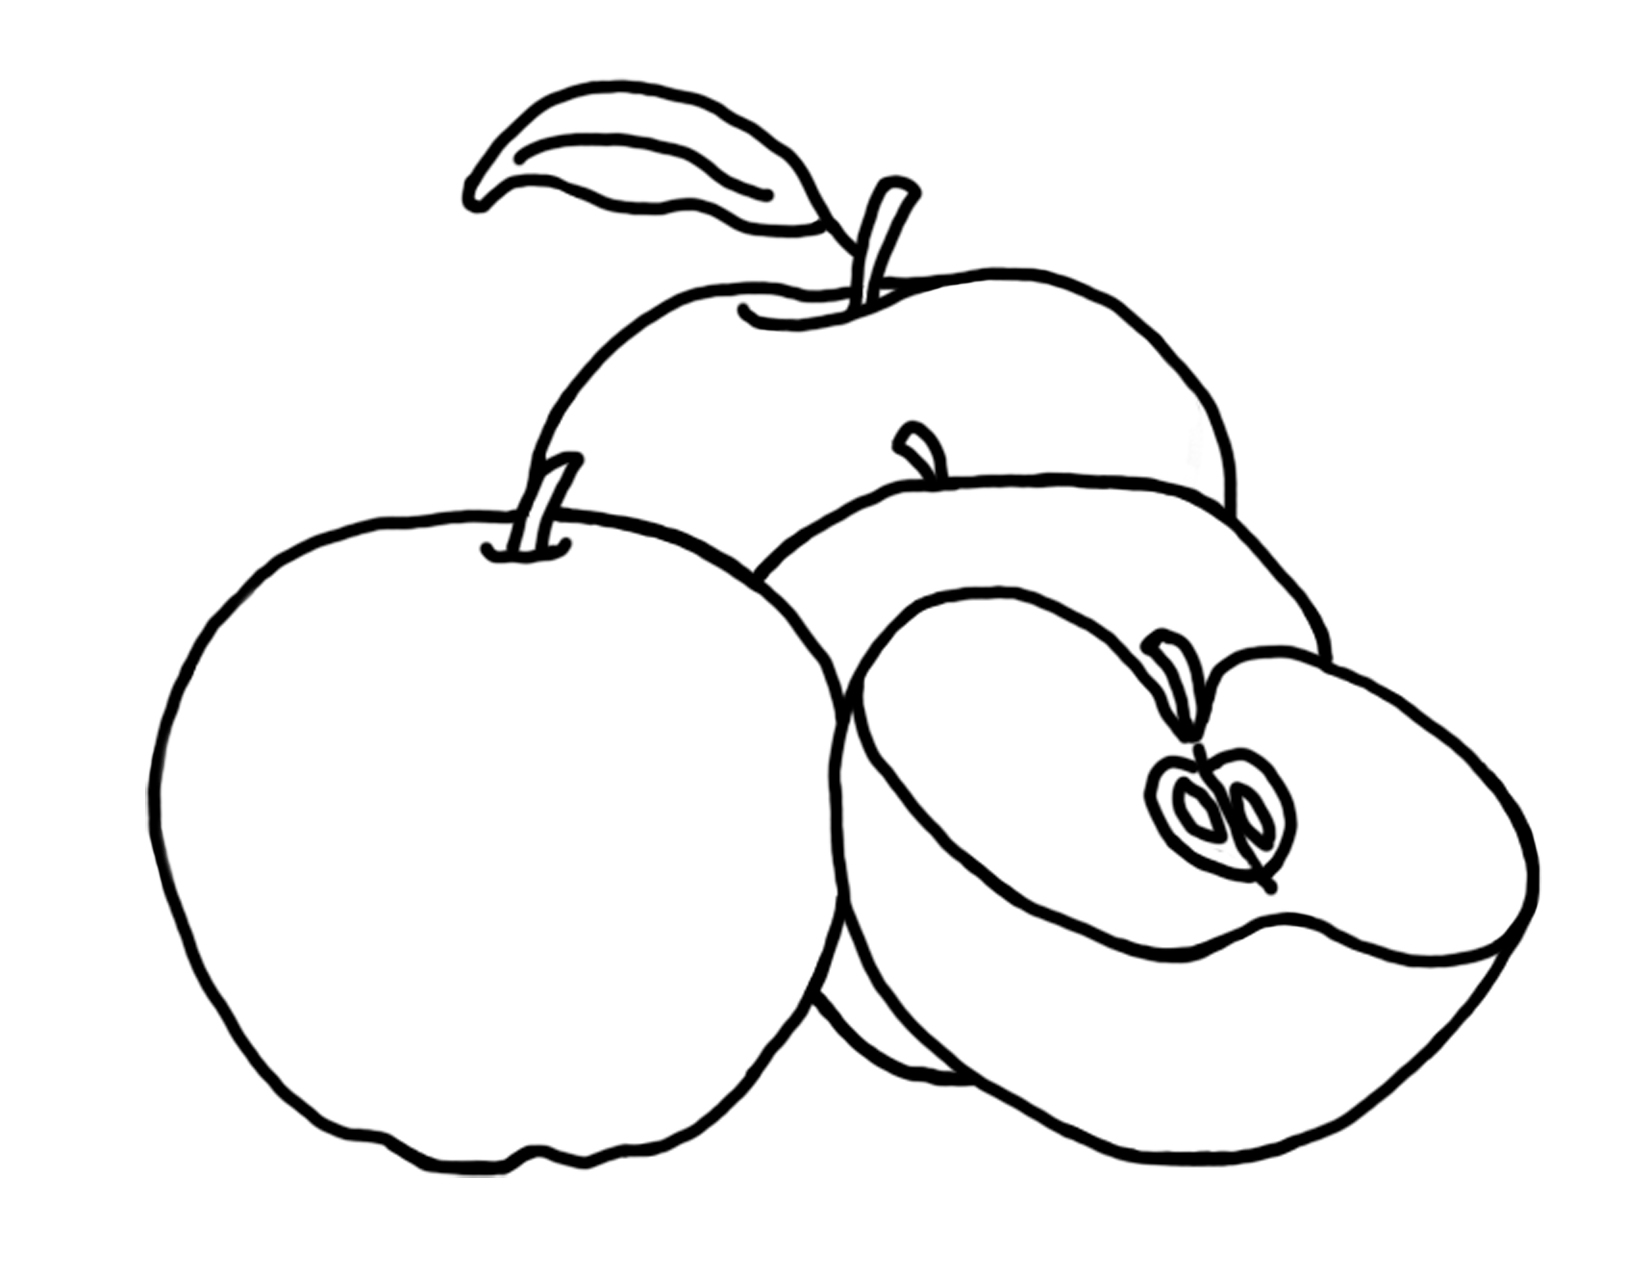 colouring images of apple free printable apple coloring pages for kids apple images colouring of